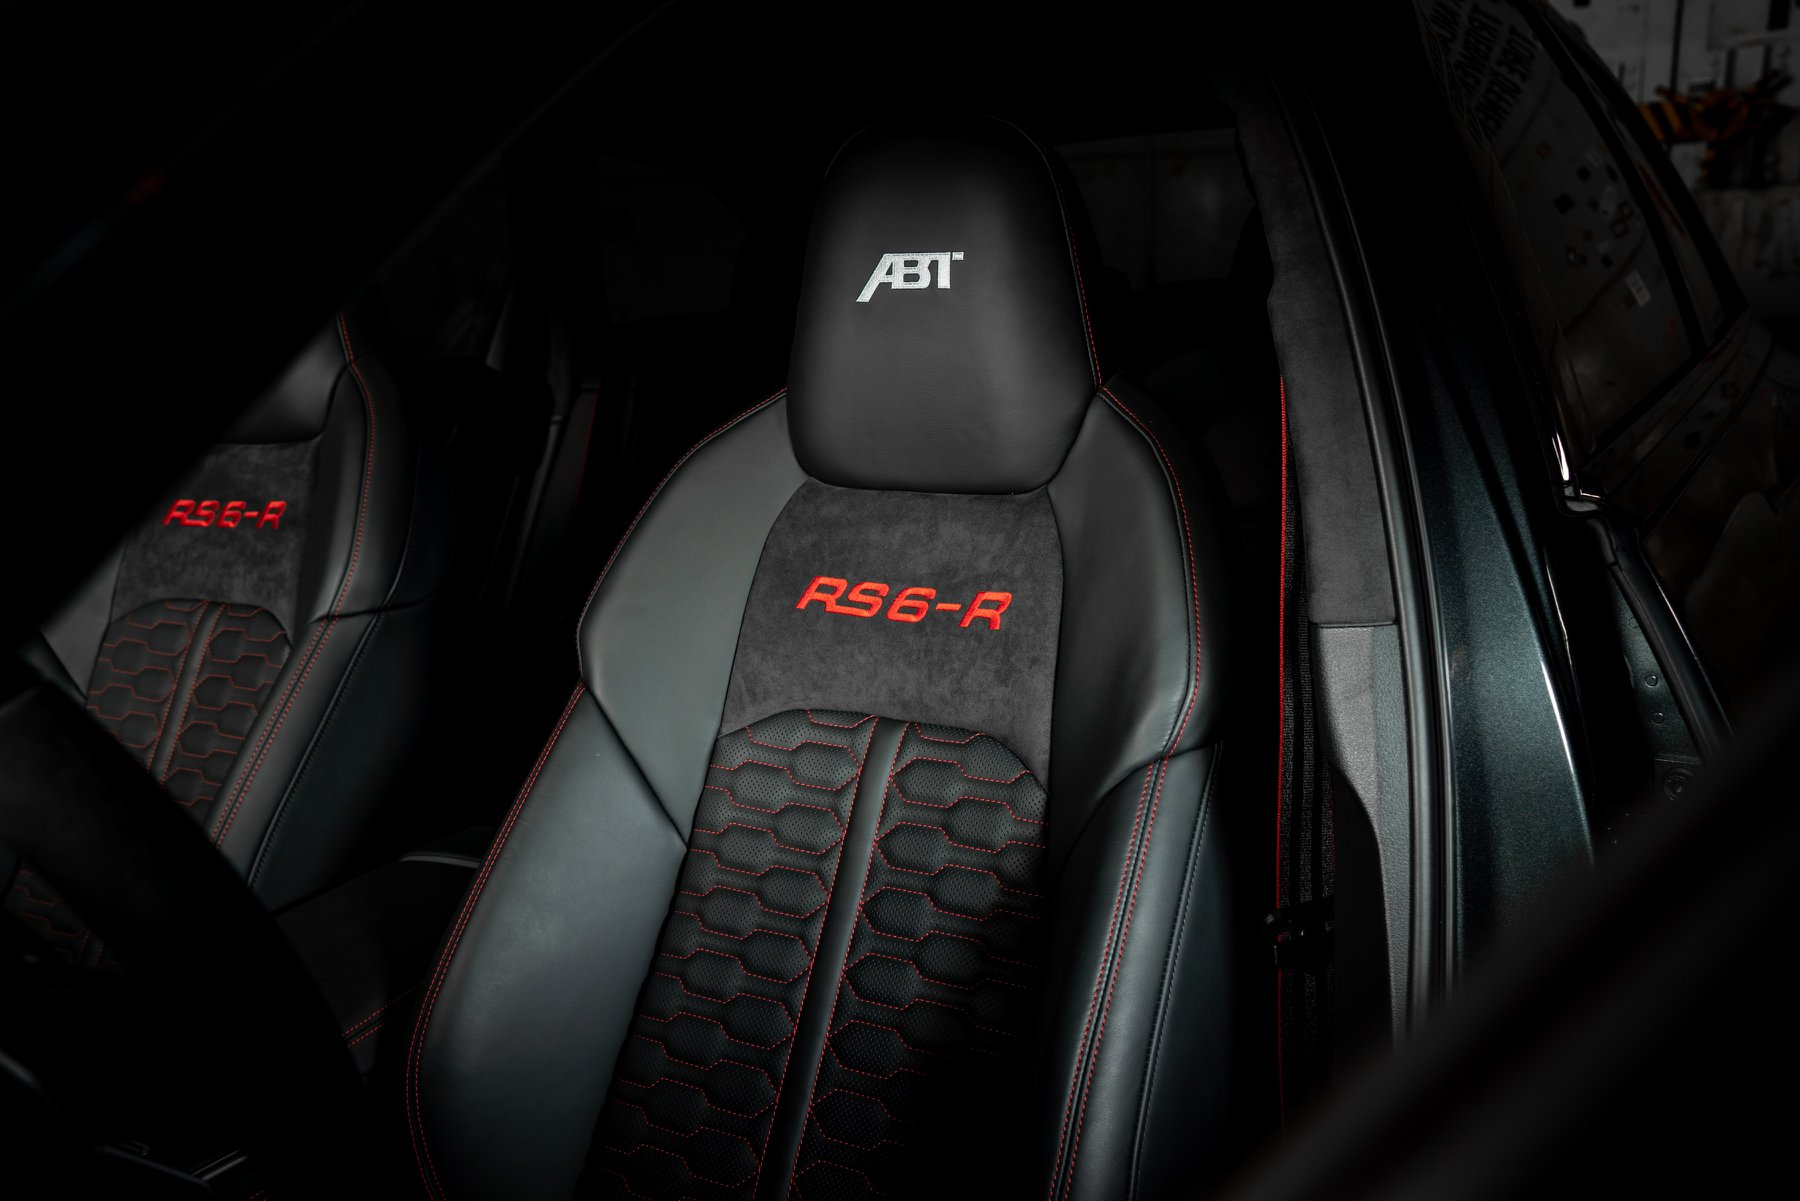 ABT RS6 R 2020 Limited 38